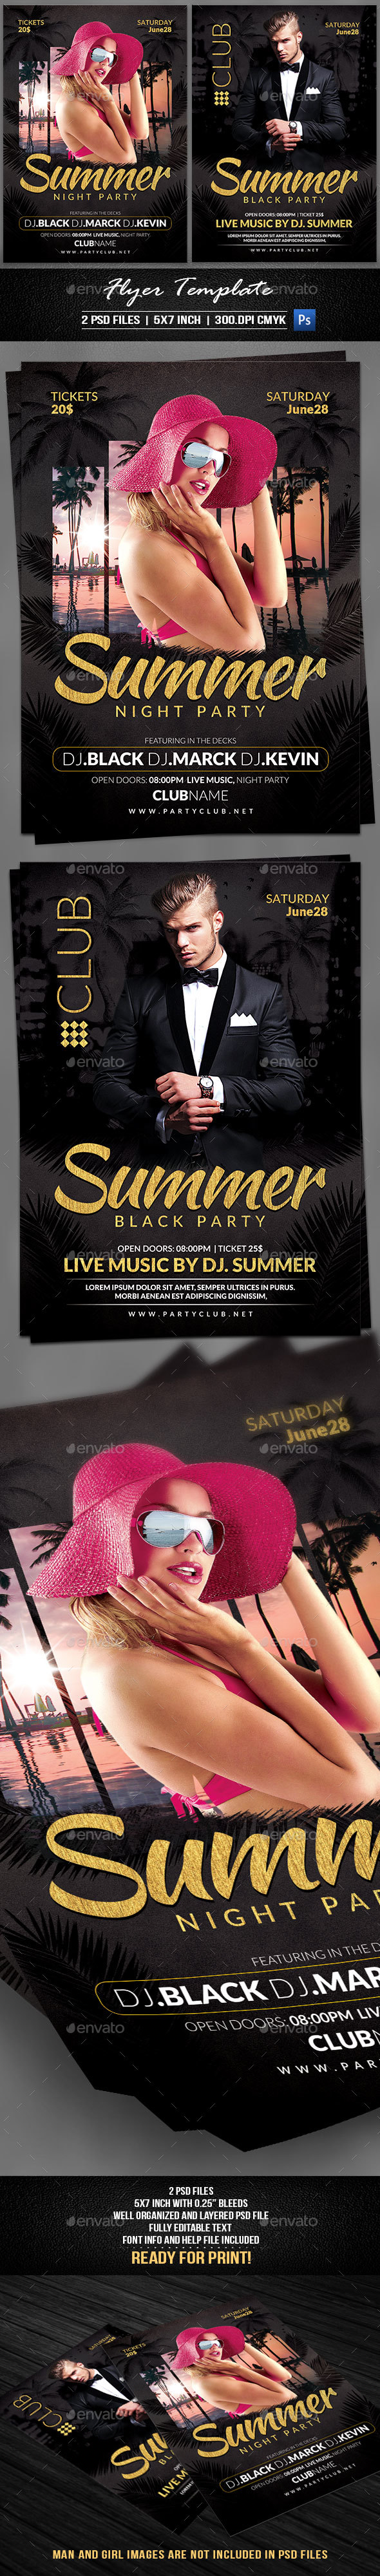 Summer Night Party Flyer Template - Flyers Print Templates